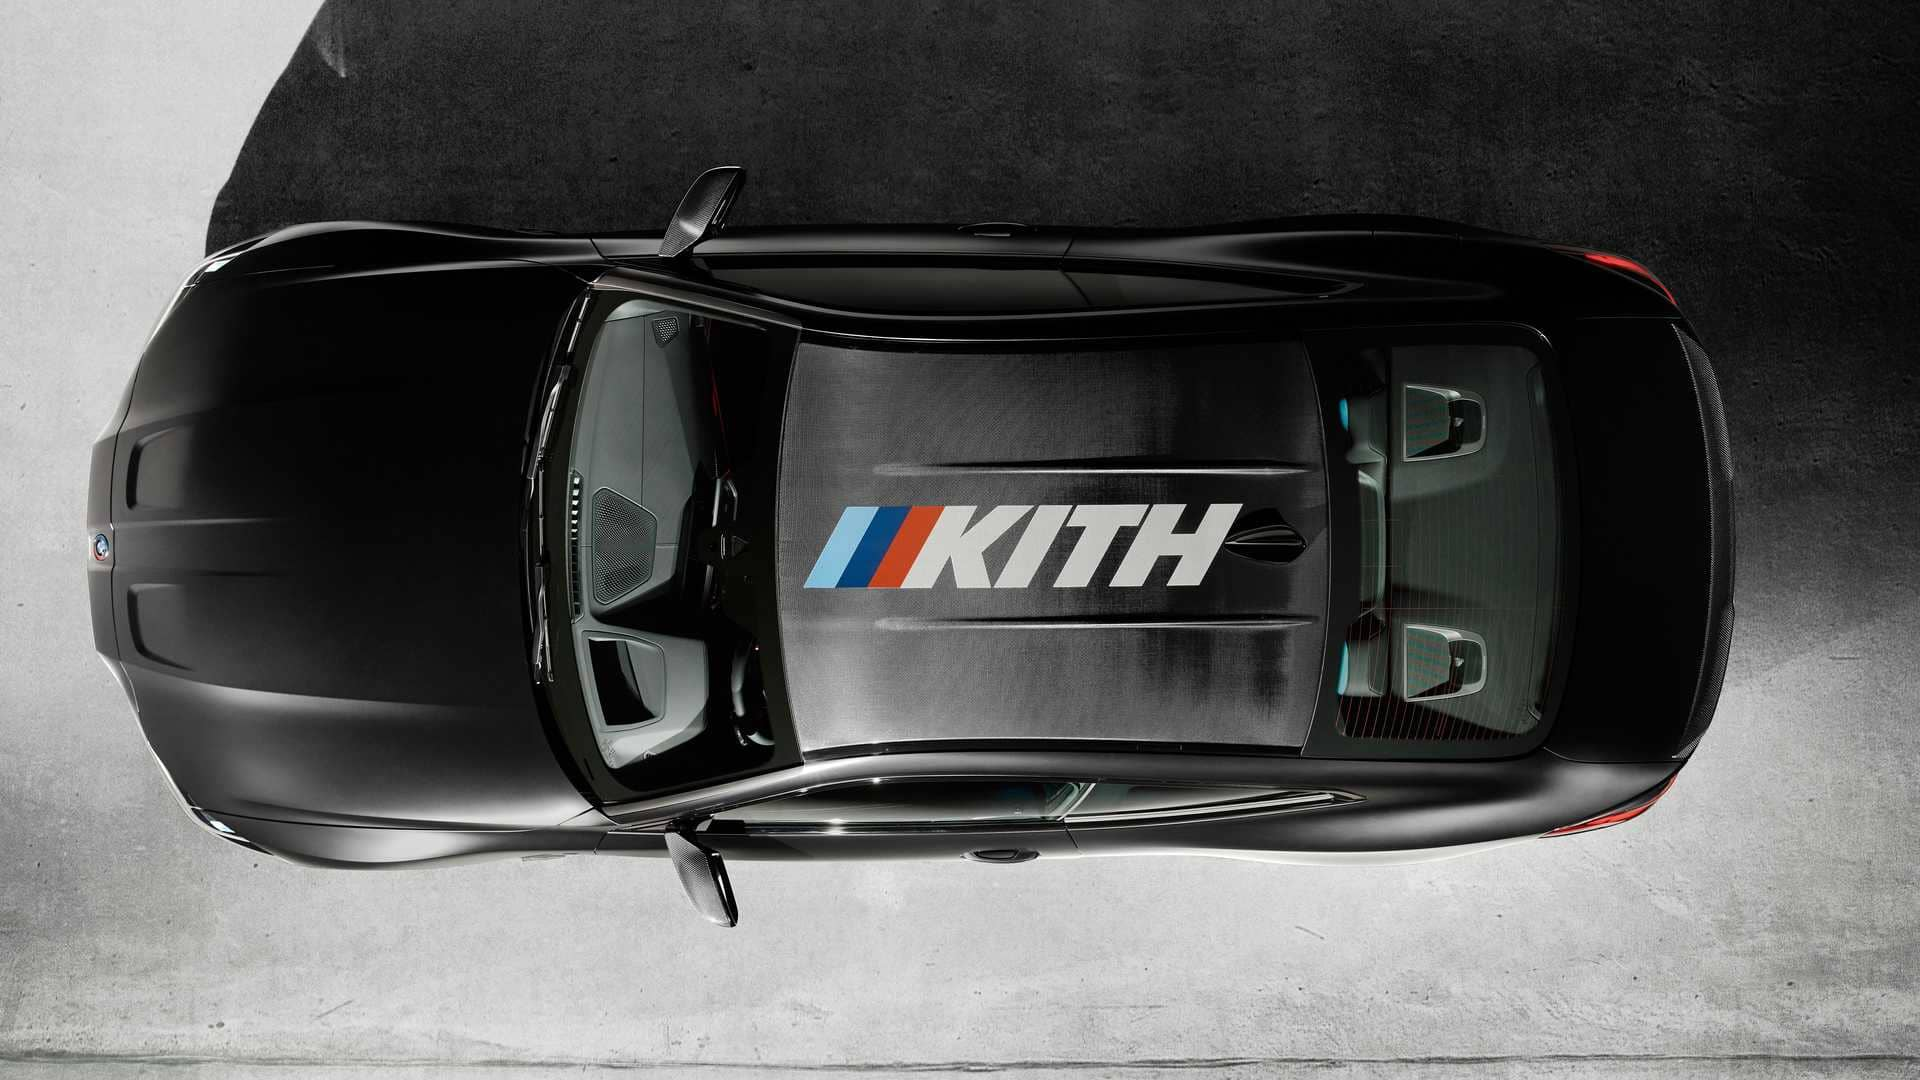 BMW M4 by Kith (2)